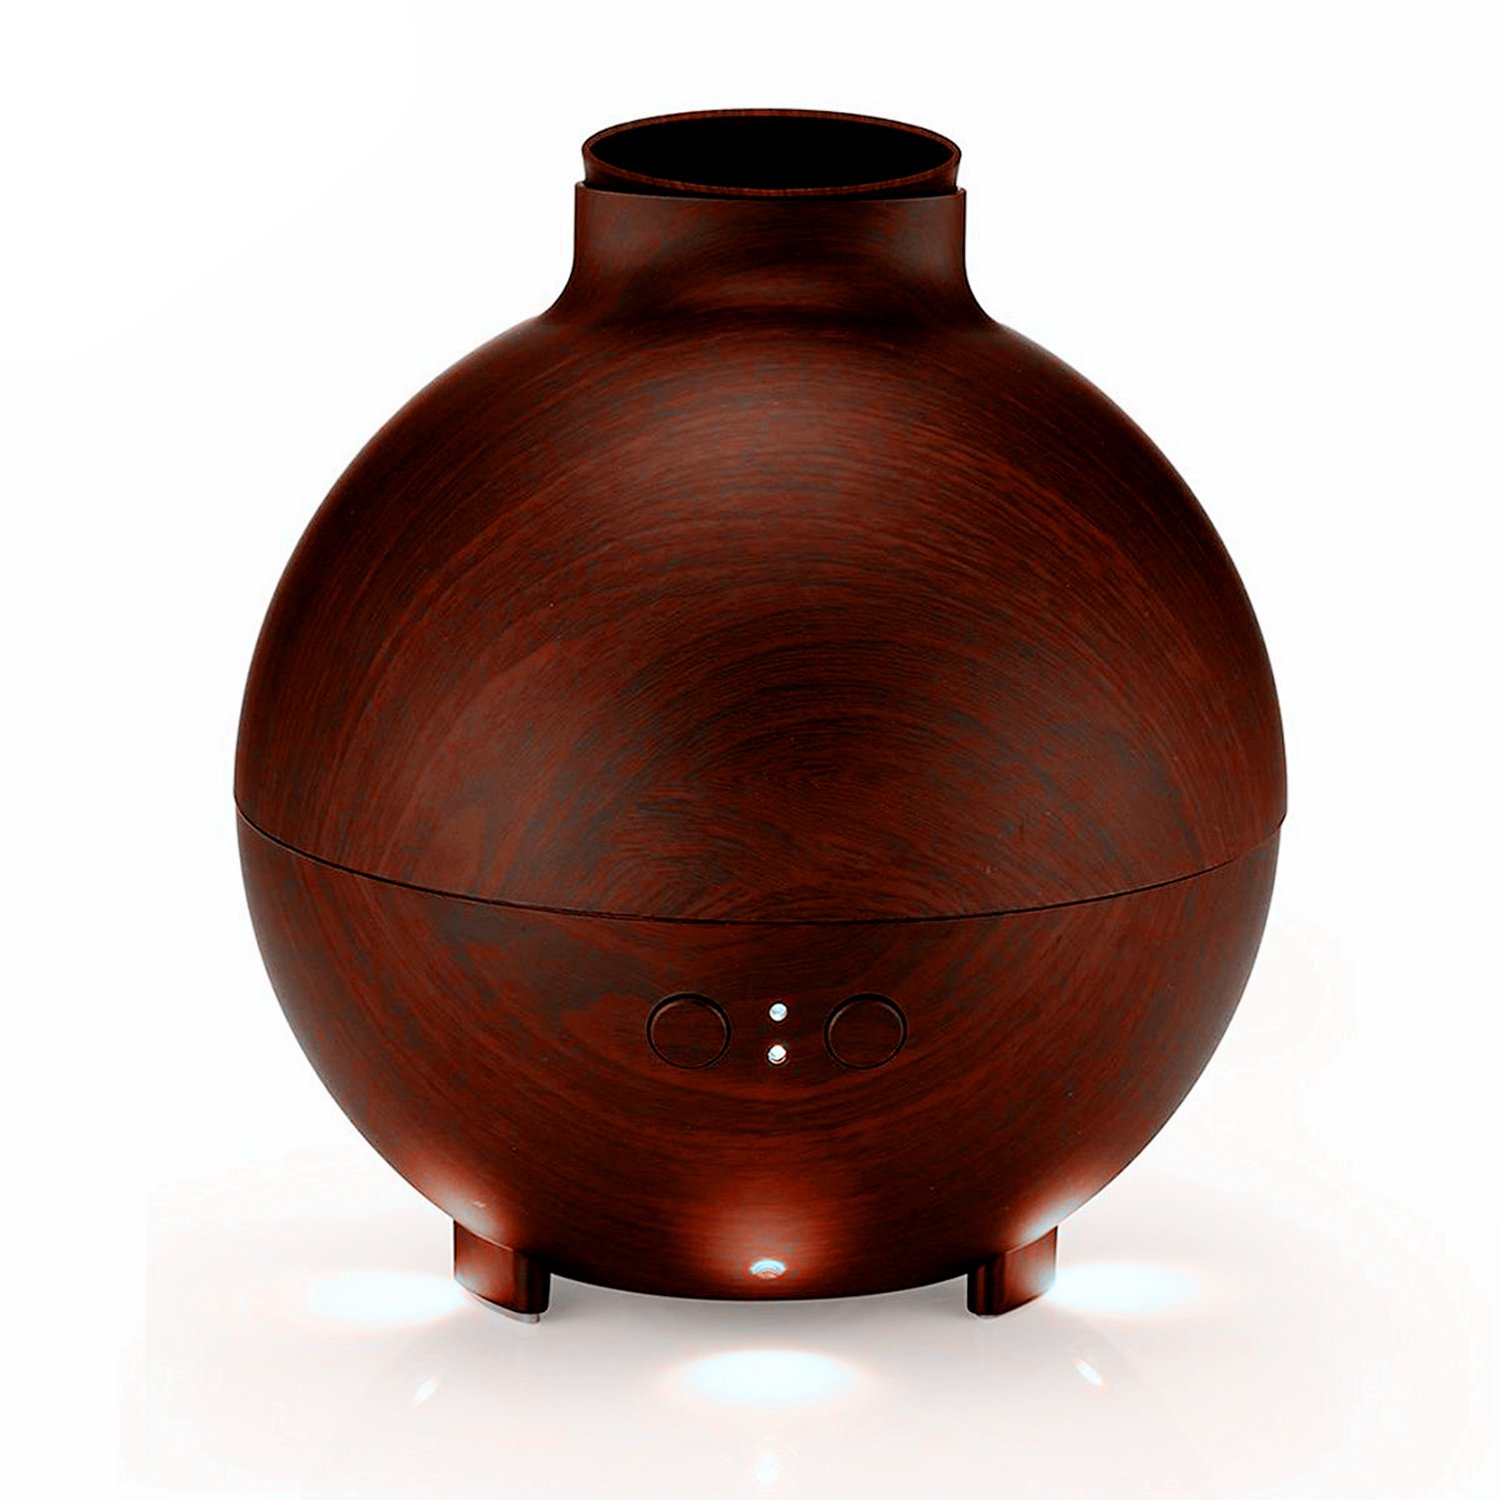 Large Essential Oil Diffuser for Aromatherapy 600ML,Large Capacity Essential Oil Diffuser Deep Aromatherapy Ionizer Ultrasonic Cool Mist Humidifier for Office Home Bedroom Living Room Study Yoga Spa